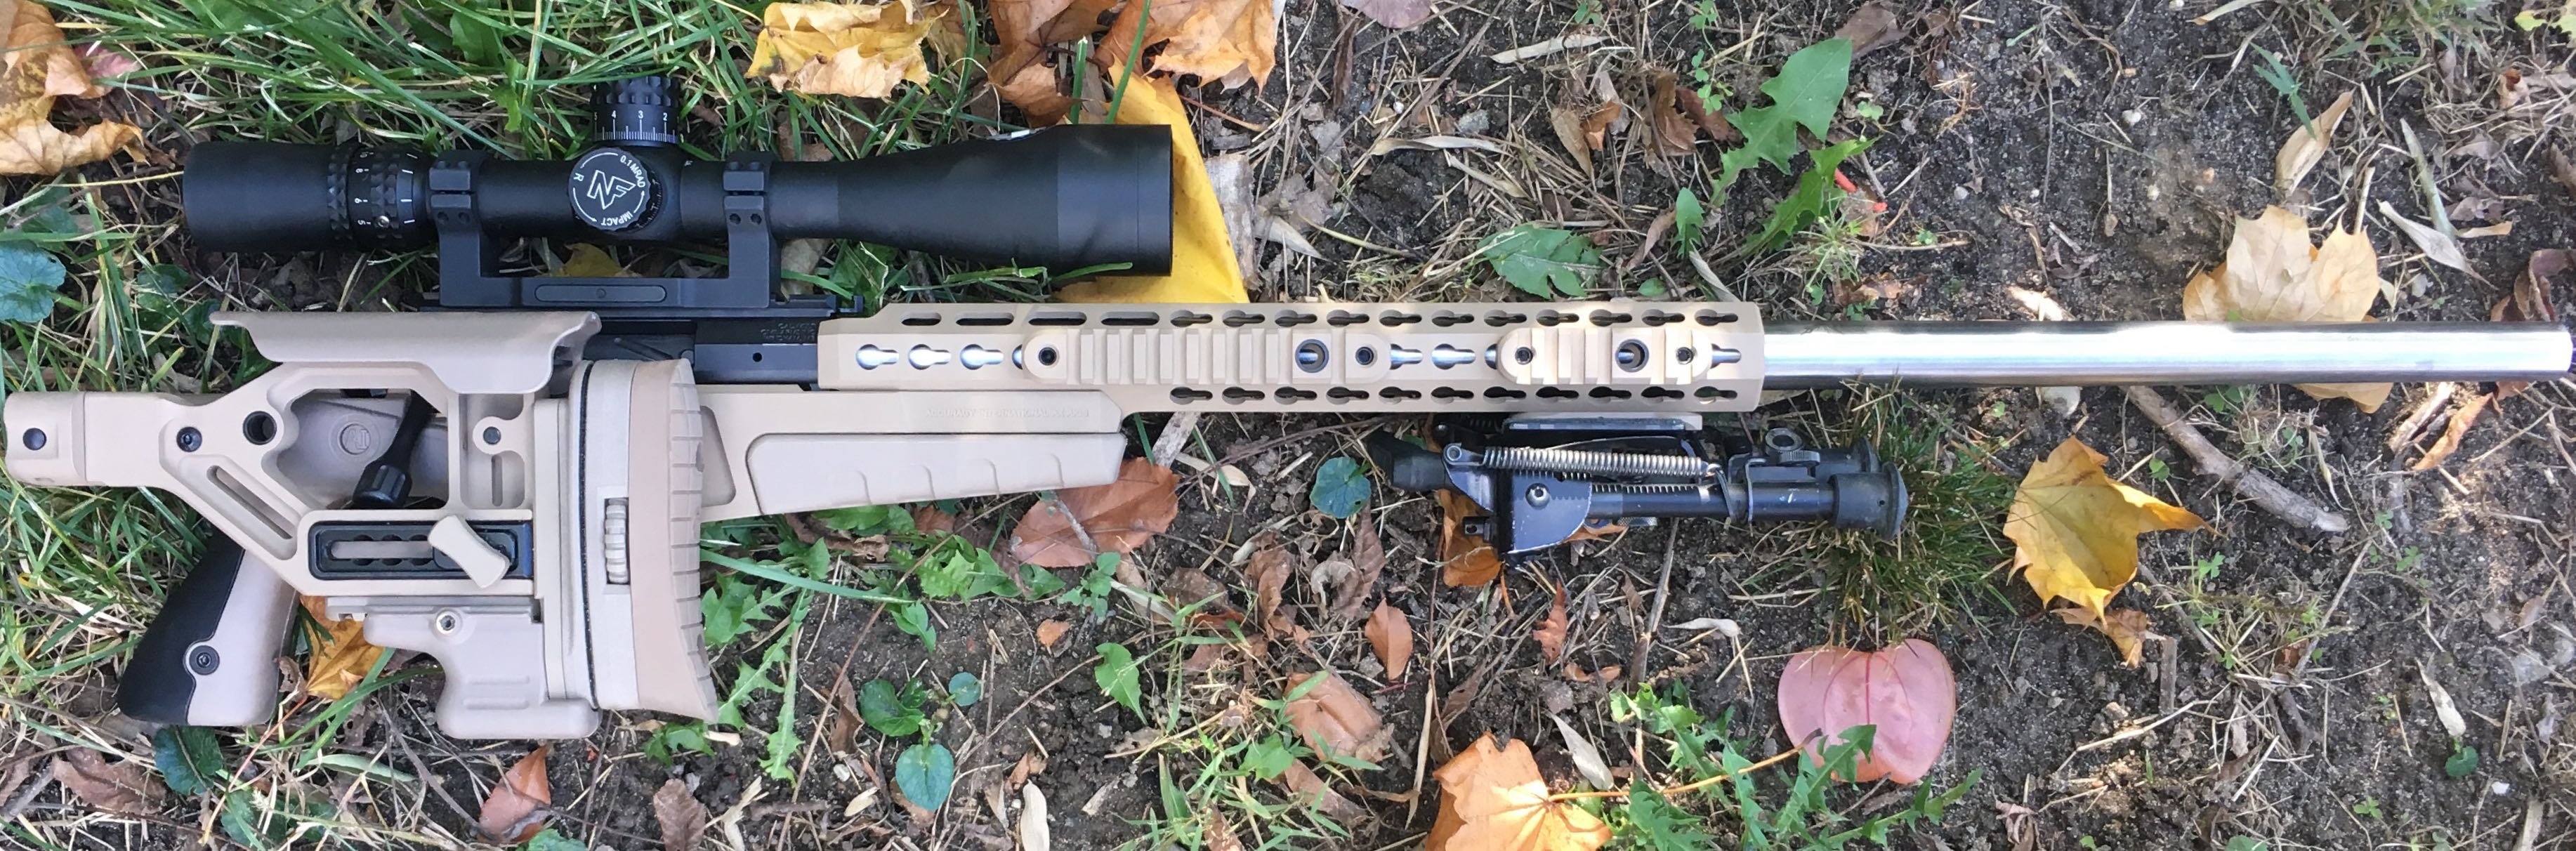 u300-aics-ax-chassis-nf-6-creed-folded-4